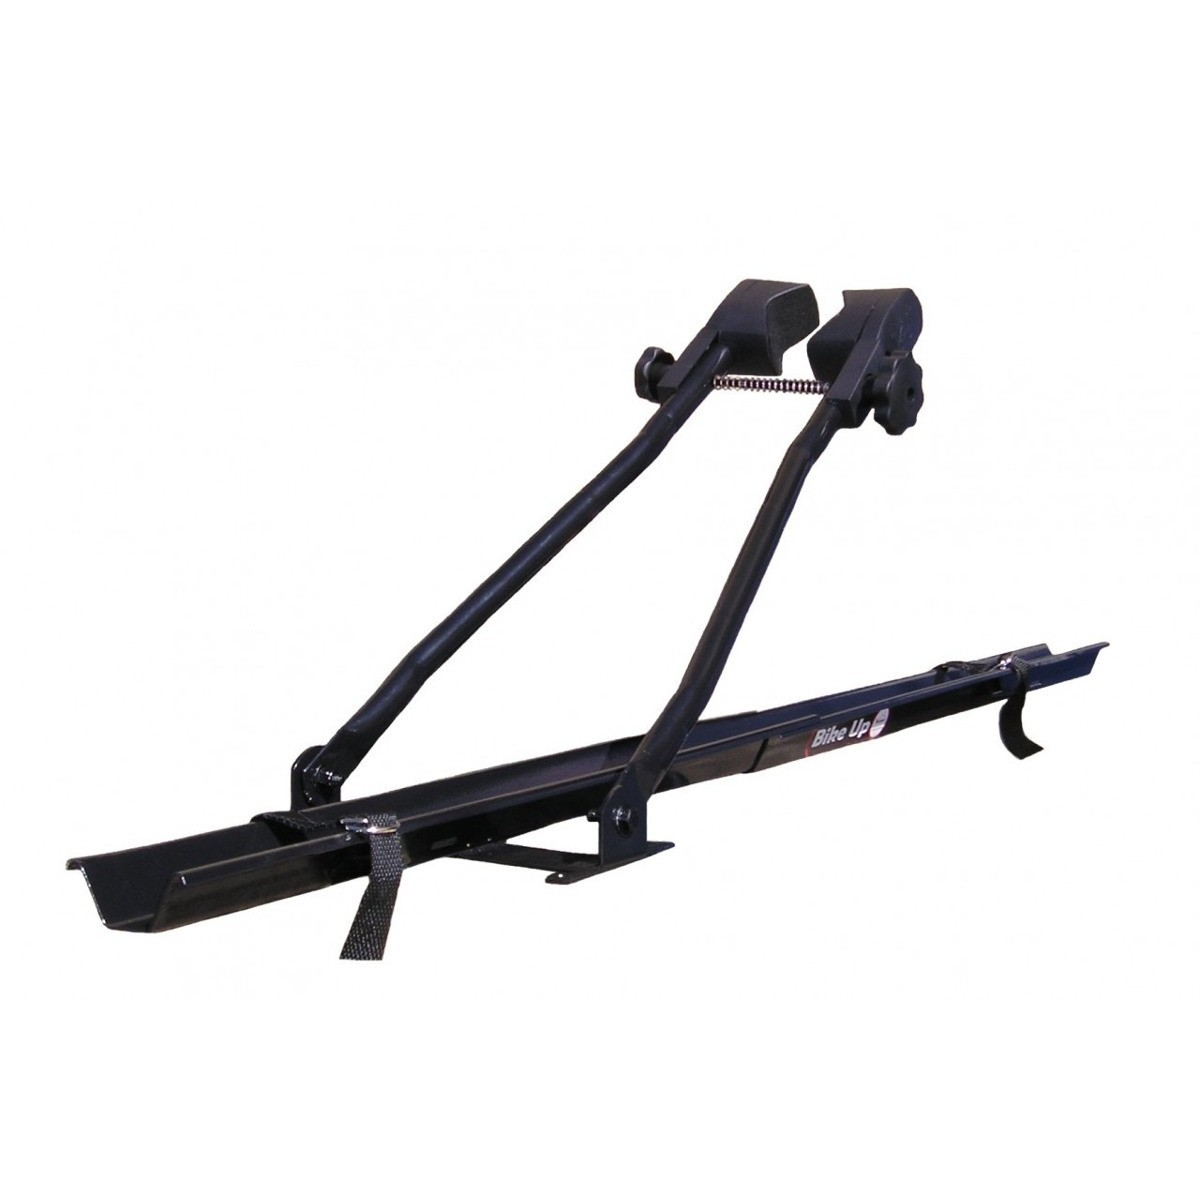 Transbike Rack De Teto Bike Up Para 1 Bicicleta